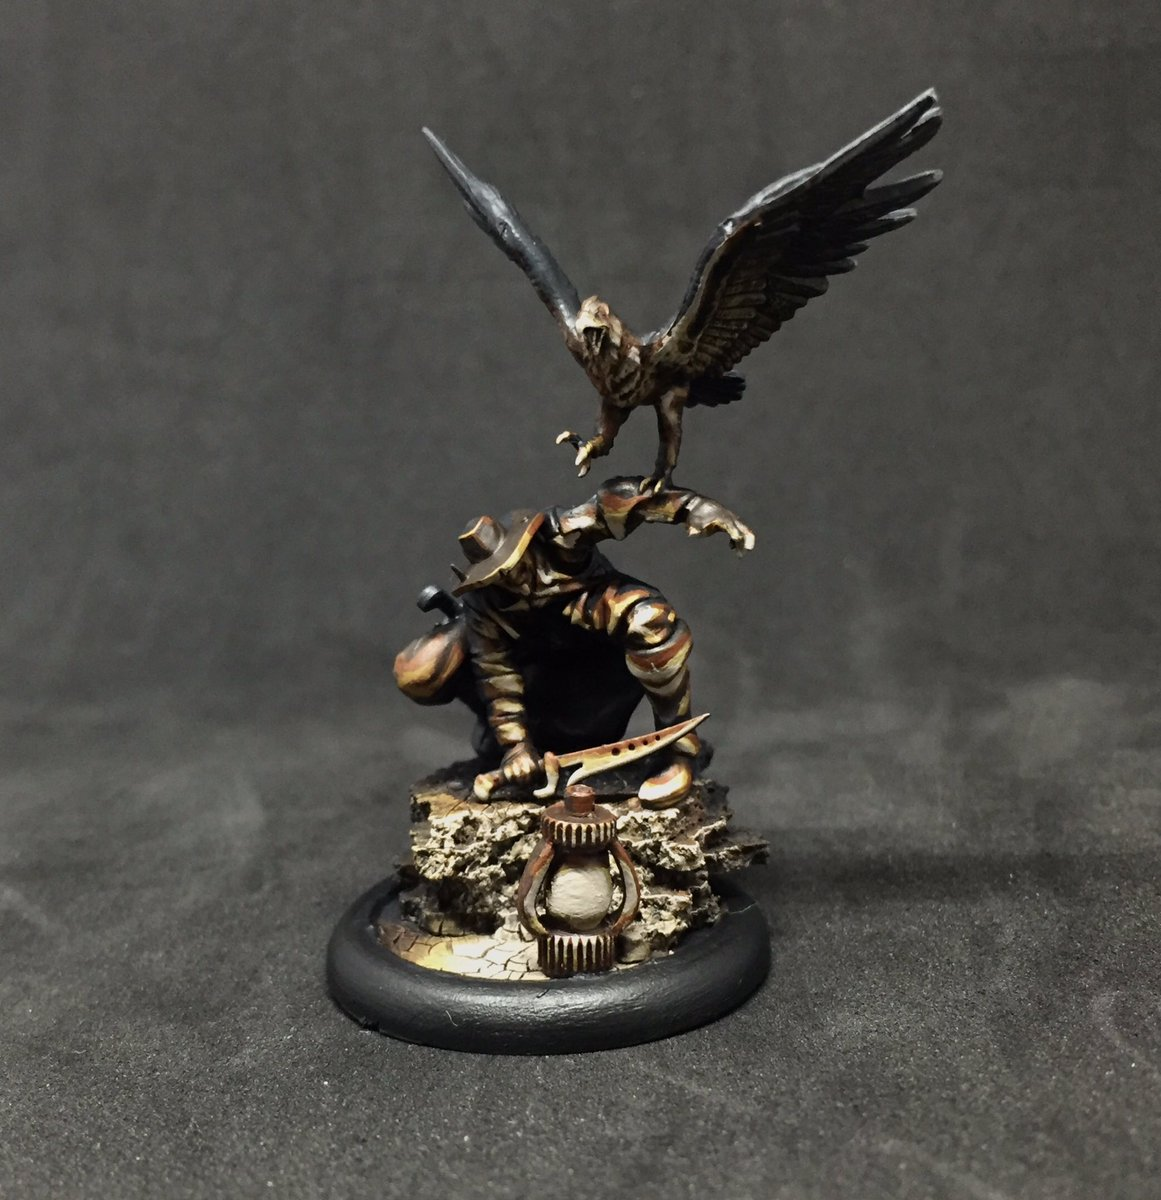 Cheezus On Twitter Guild Austringer Malifaux Some highlights include beloved and austringer. guild austringer malifaux